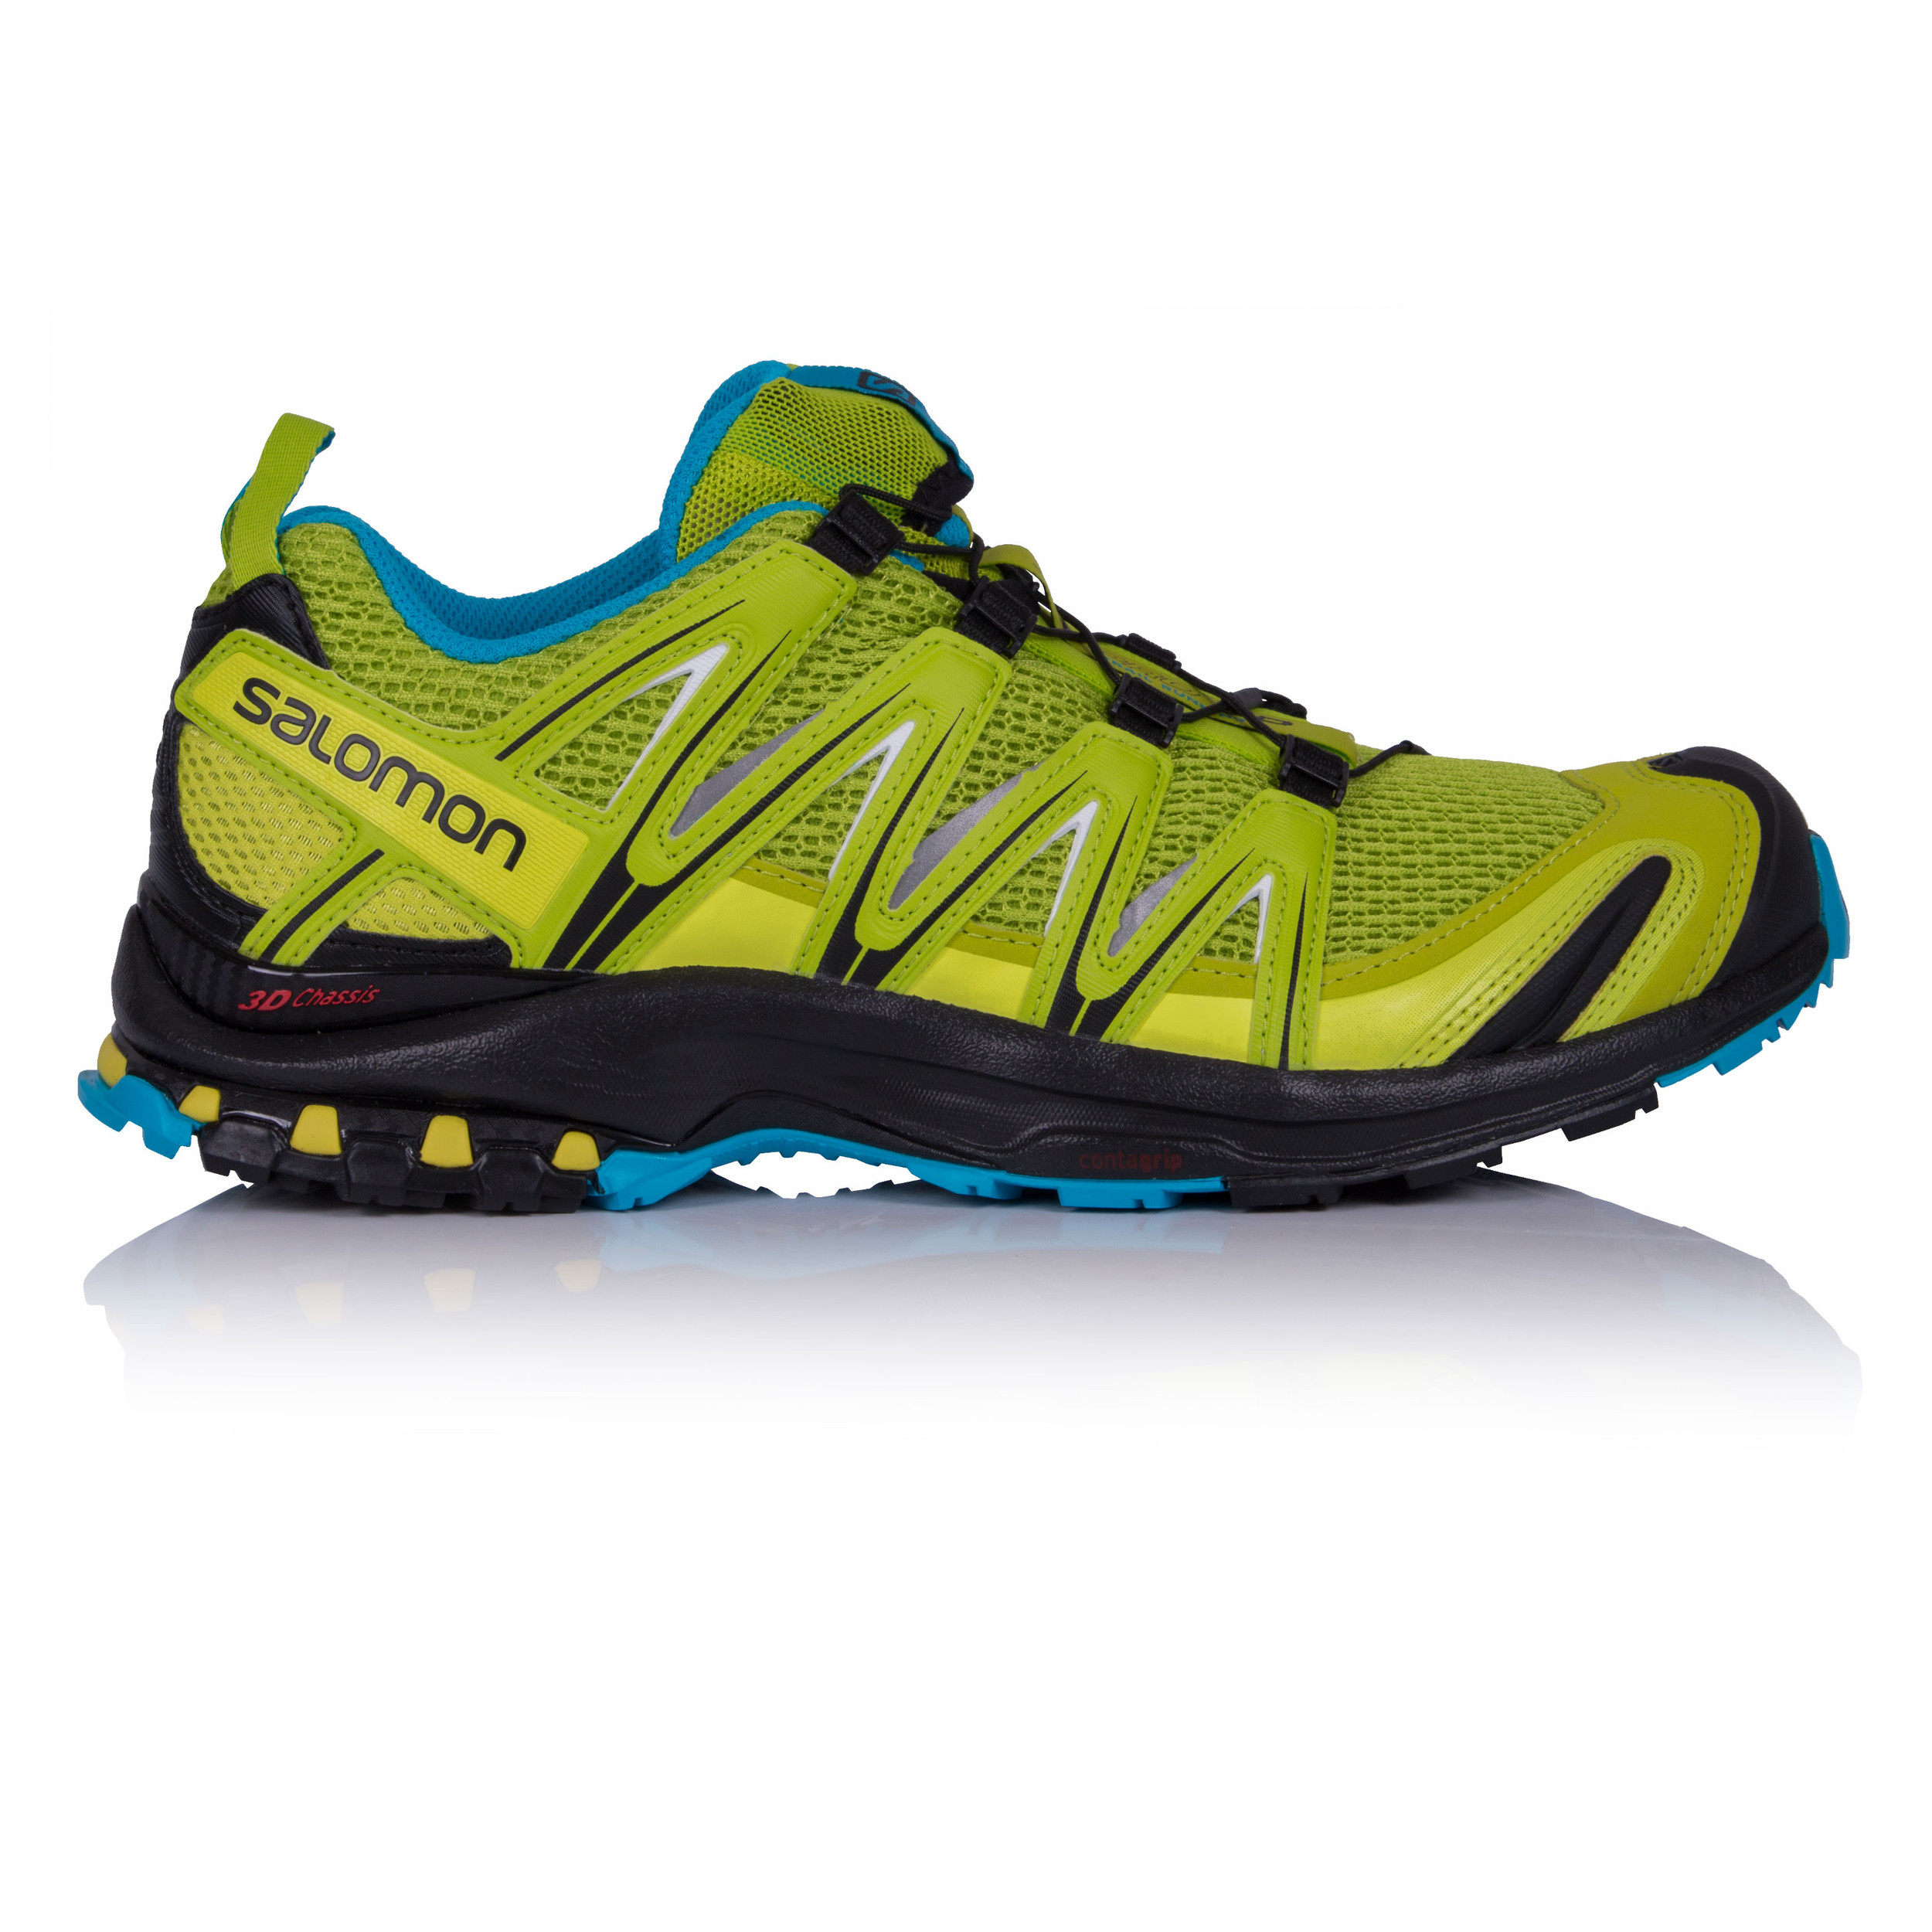 Salomon XA Pro 3D Mens Green Trail Running Sports Shoes Trainers Sneakers